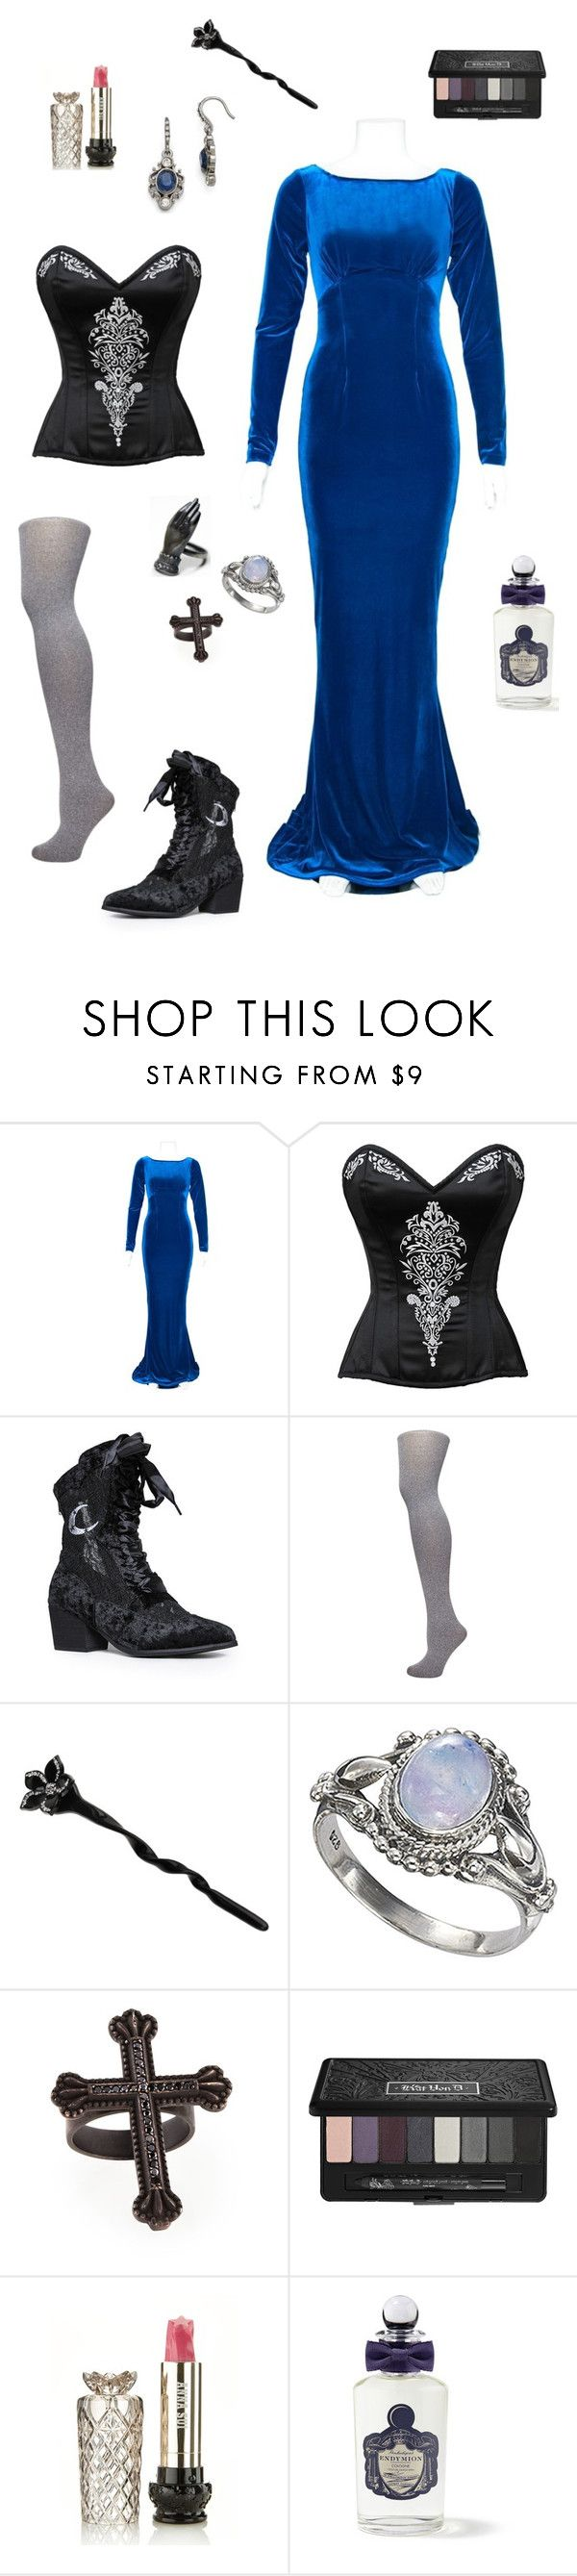 """""""blue gothic"""" by apeculiarpersonage ❤ liked on Polyvore featuring Dorothy Perkins, France Luxe, KATIE Design, Kat Von D, Anna Sui and PENHALIGON'S"""